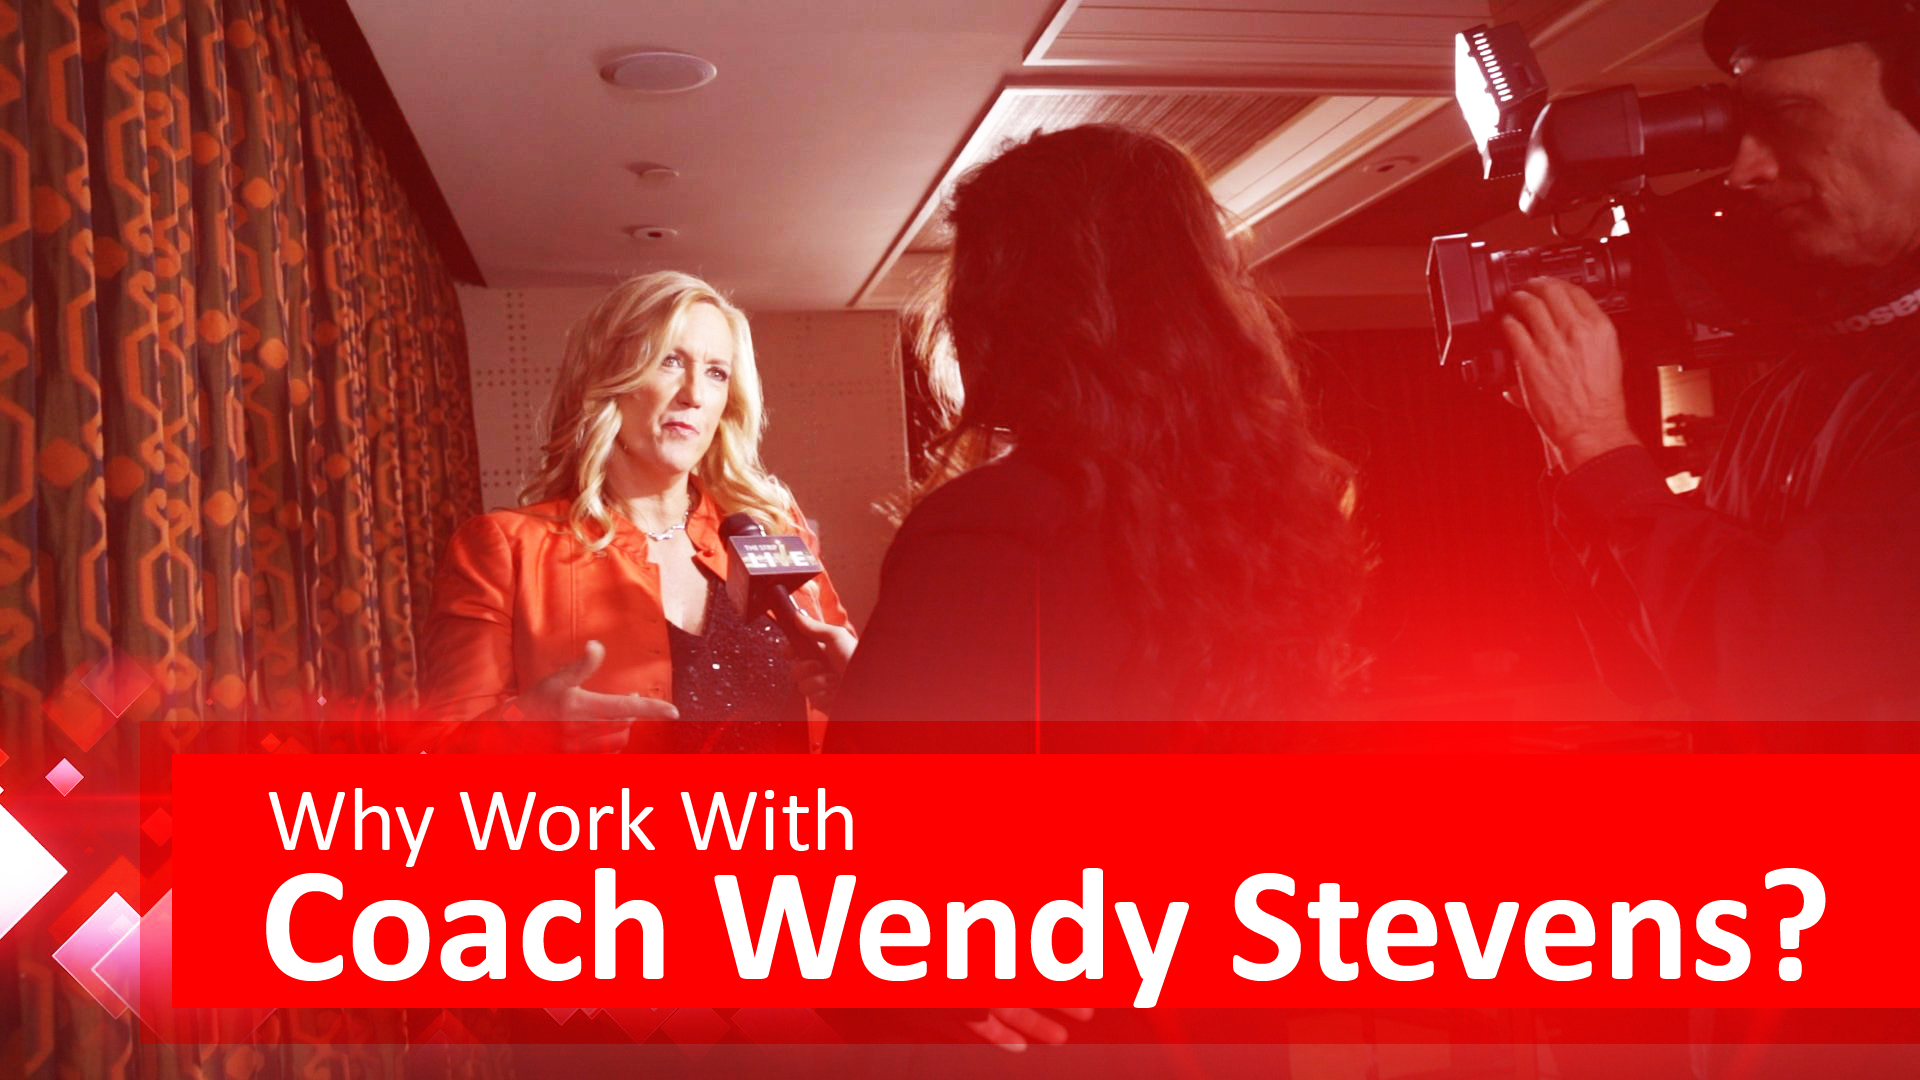 Why work with Coach Wendy Stevens